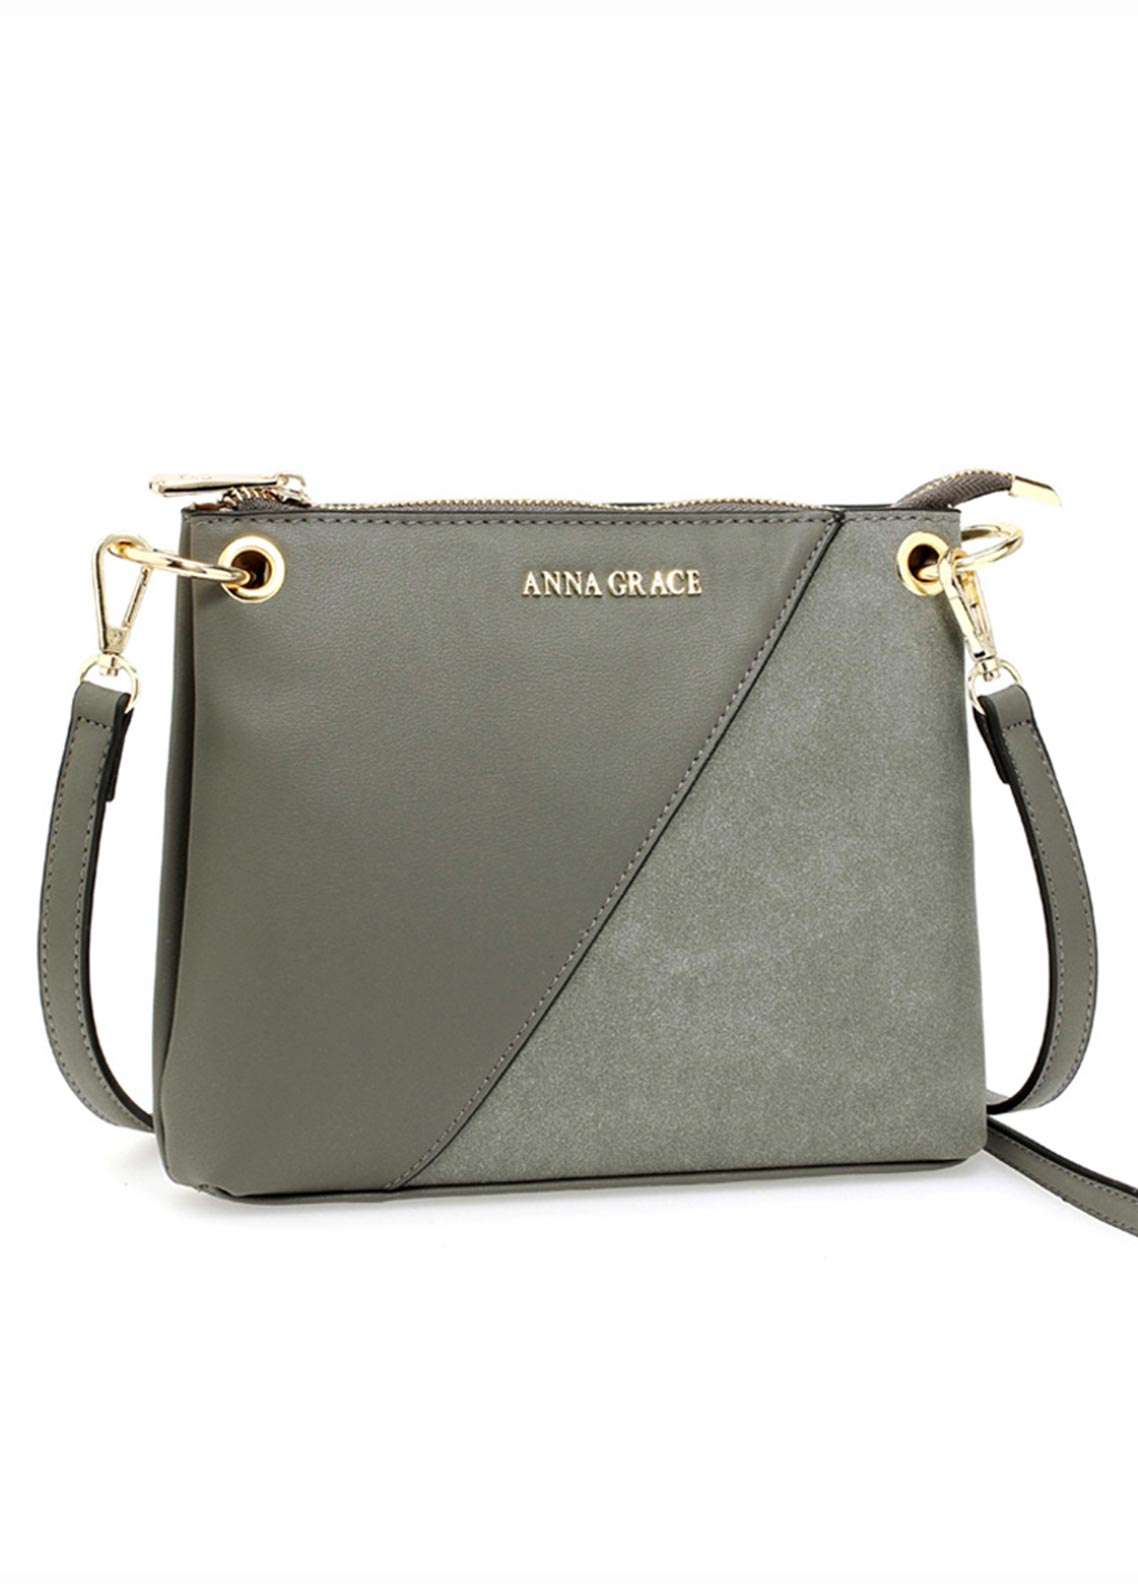 Anna Grace London Faux Leather Crossbody  Bags  for Women  Grey with Smooth Texture